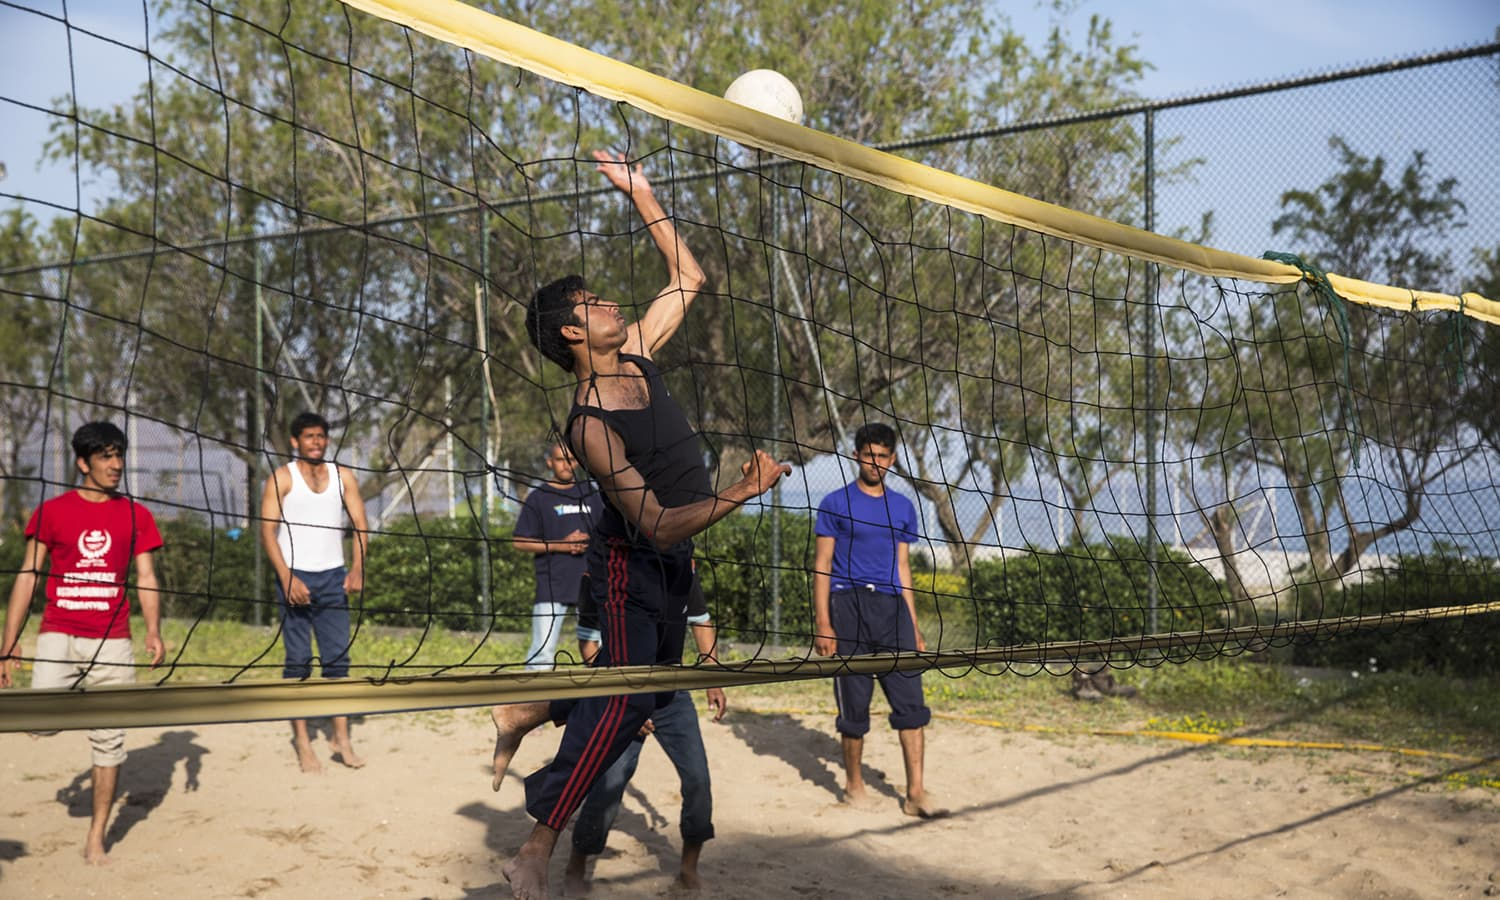 At the No Border Kitchen, an unauthorised camp on the beach on Lesbos island, migrants found a way into the locked volleyball court and have been holding daily matches. Although daily life is pleasant now that the weather is good, many people are very stressed and nervous about the prospect of being forcibly deported back to Turkey and perhaps after that back to Pakistan.